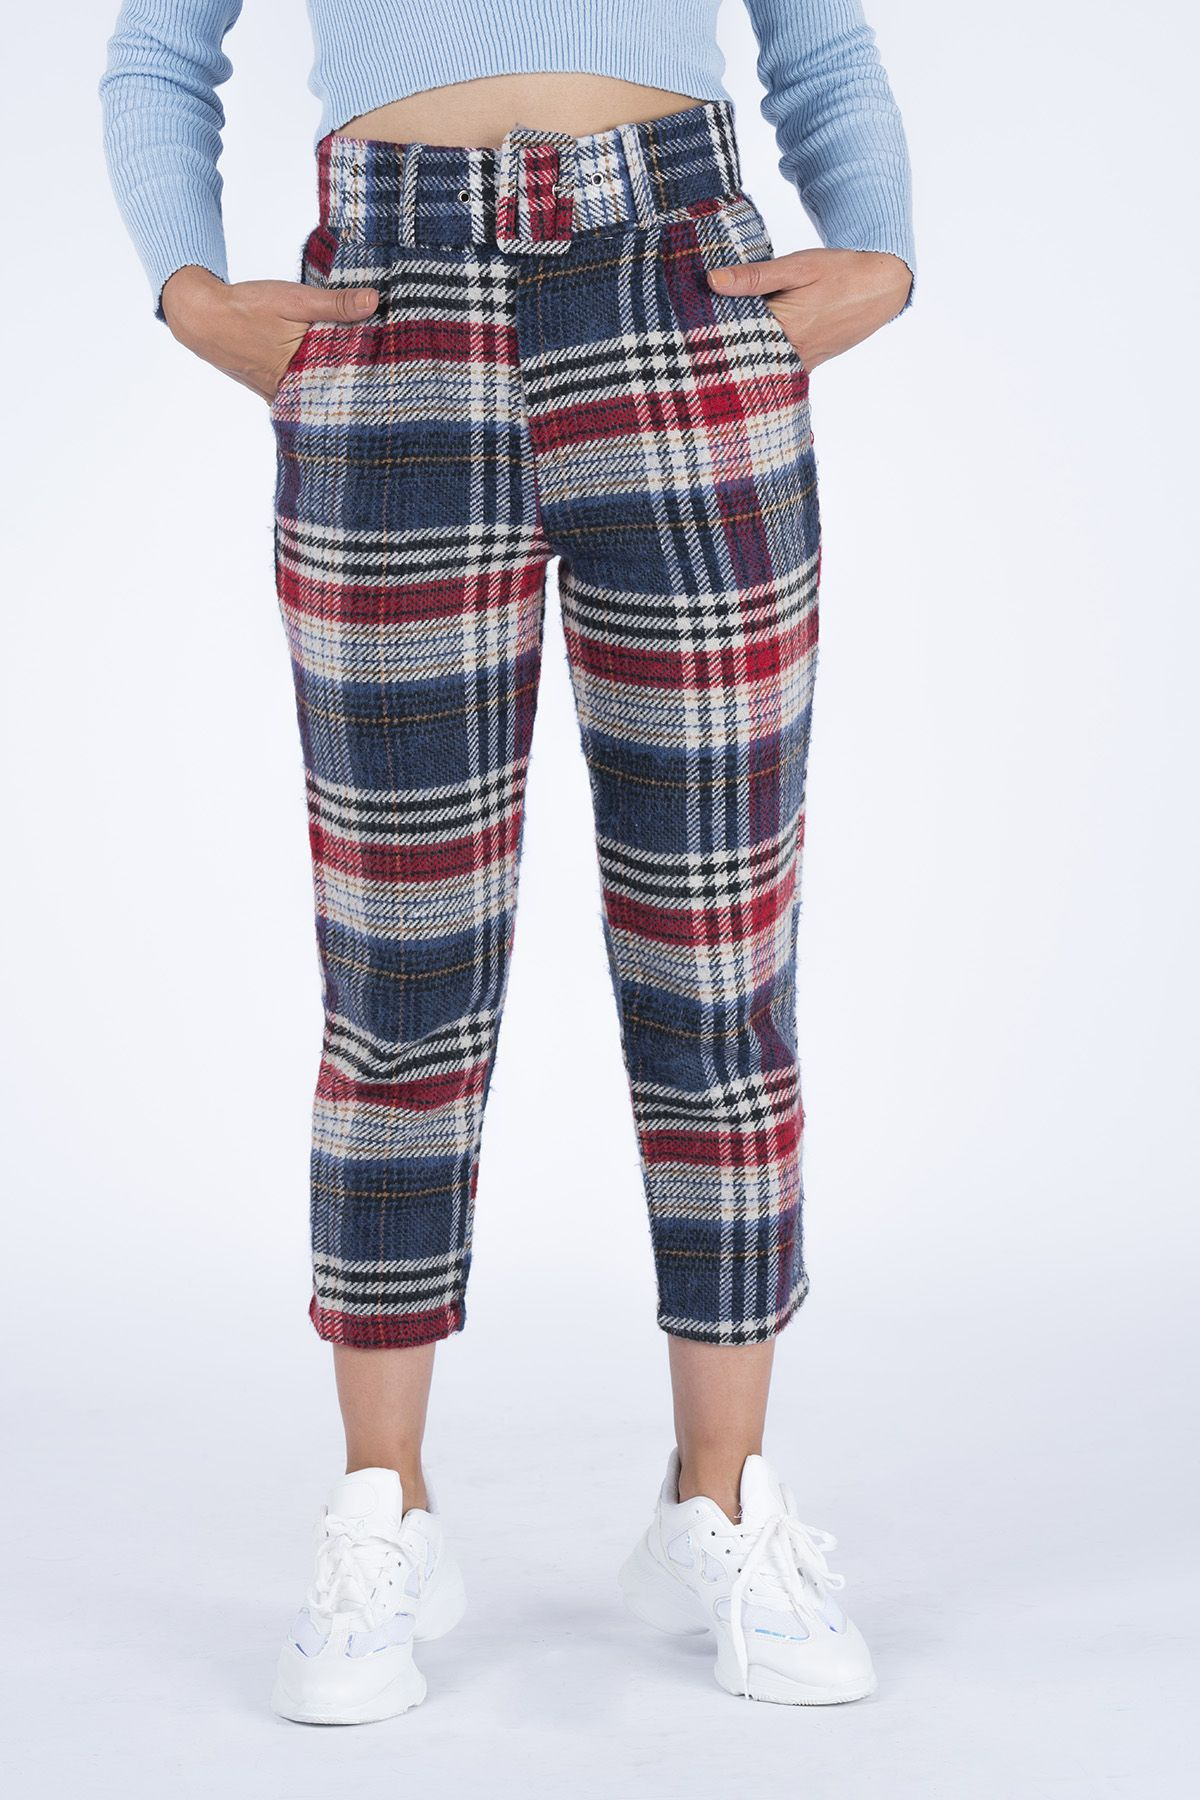 Belted Plaid Women's Pants 18998 Navy blue